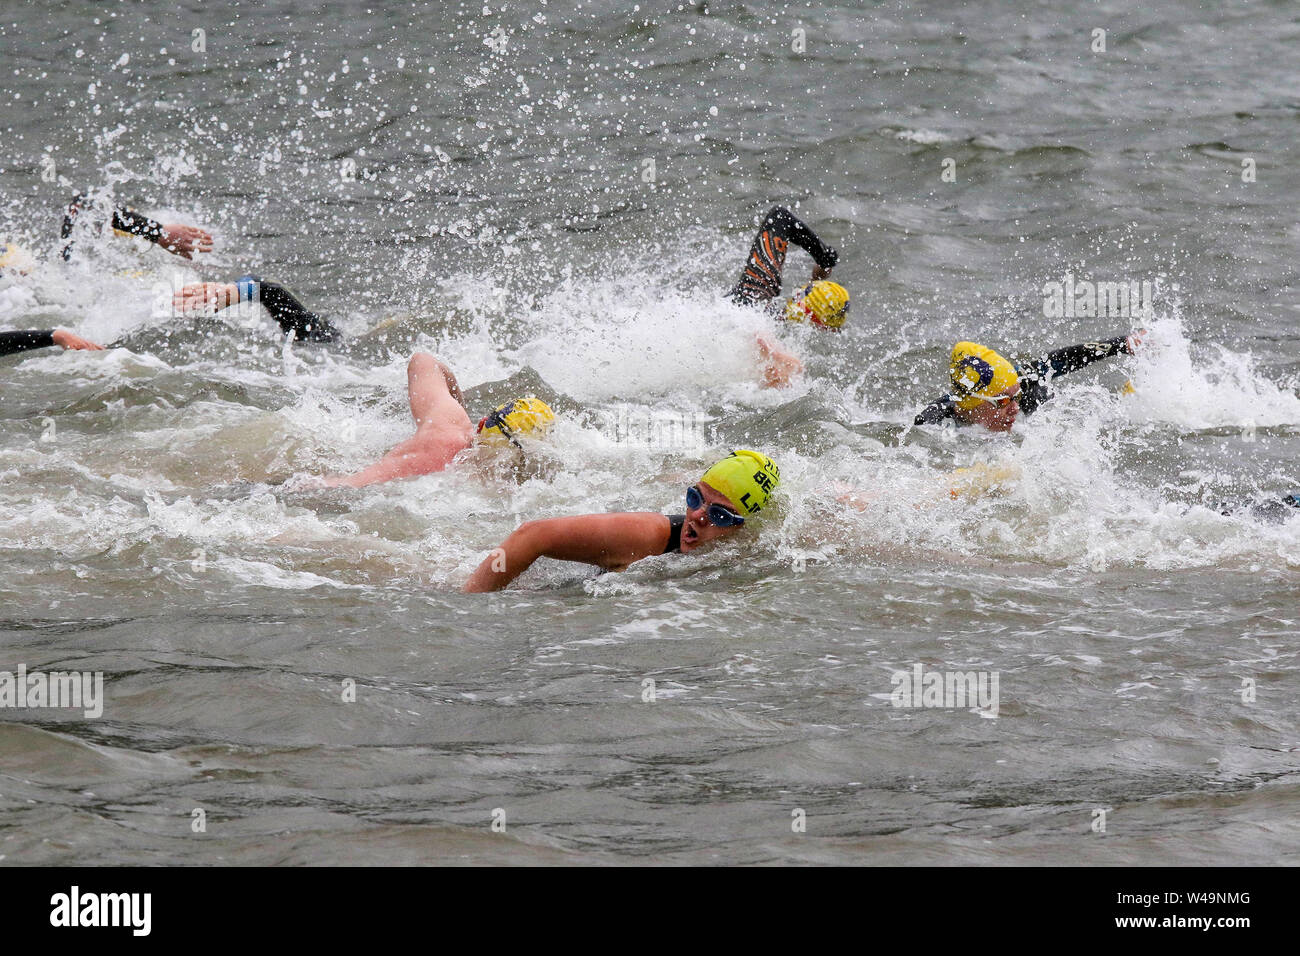 Open Water Stock Photos & Open Water Stock Images - Alamy